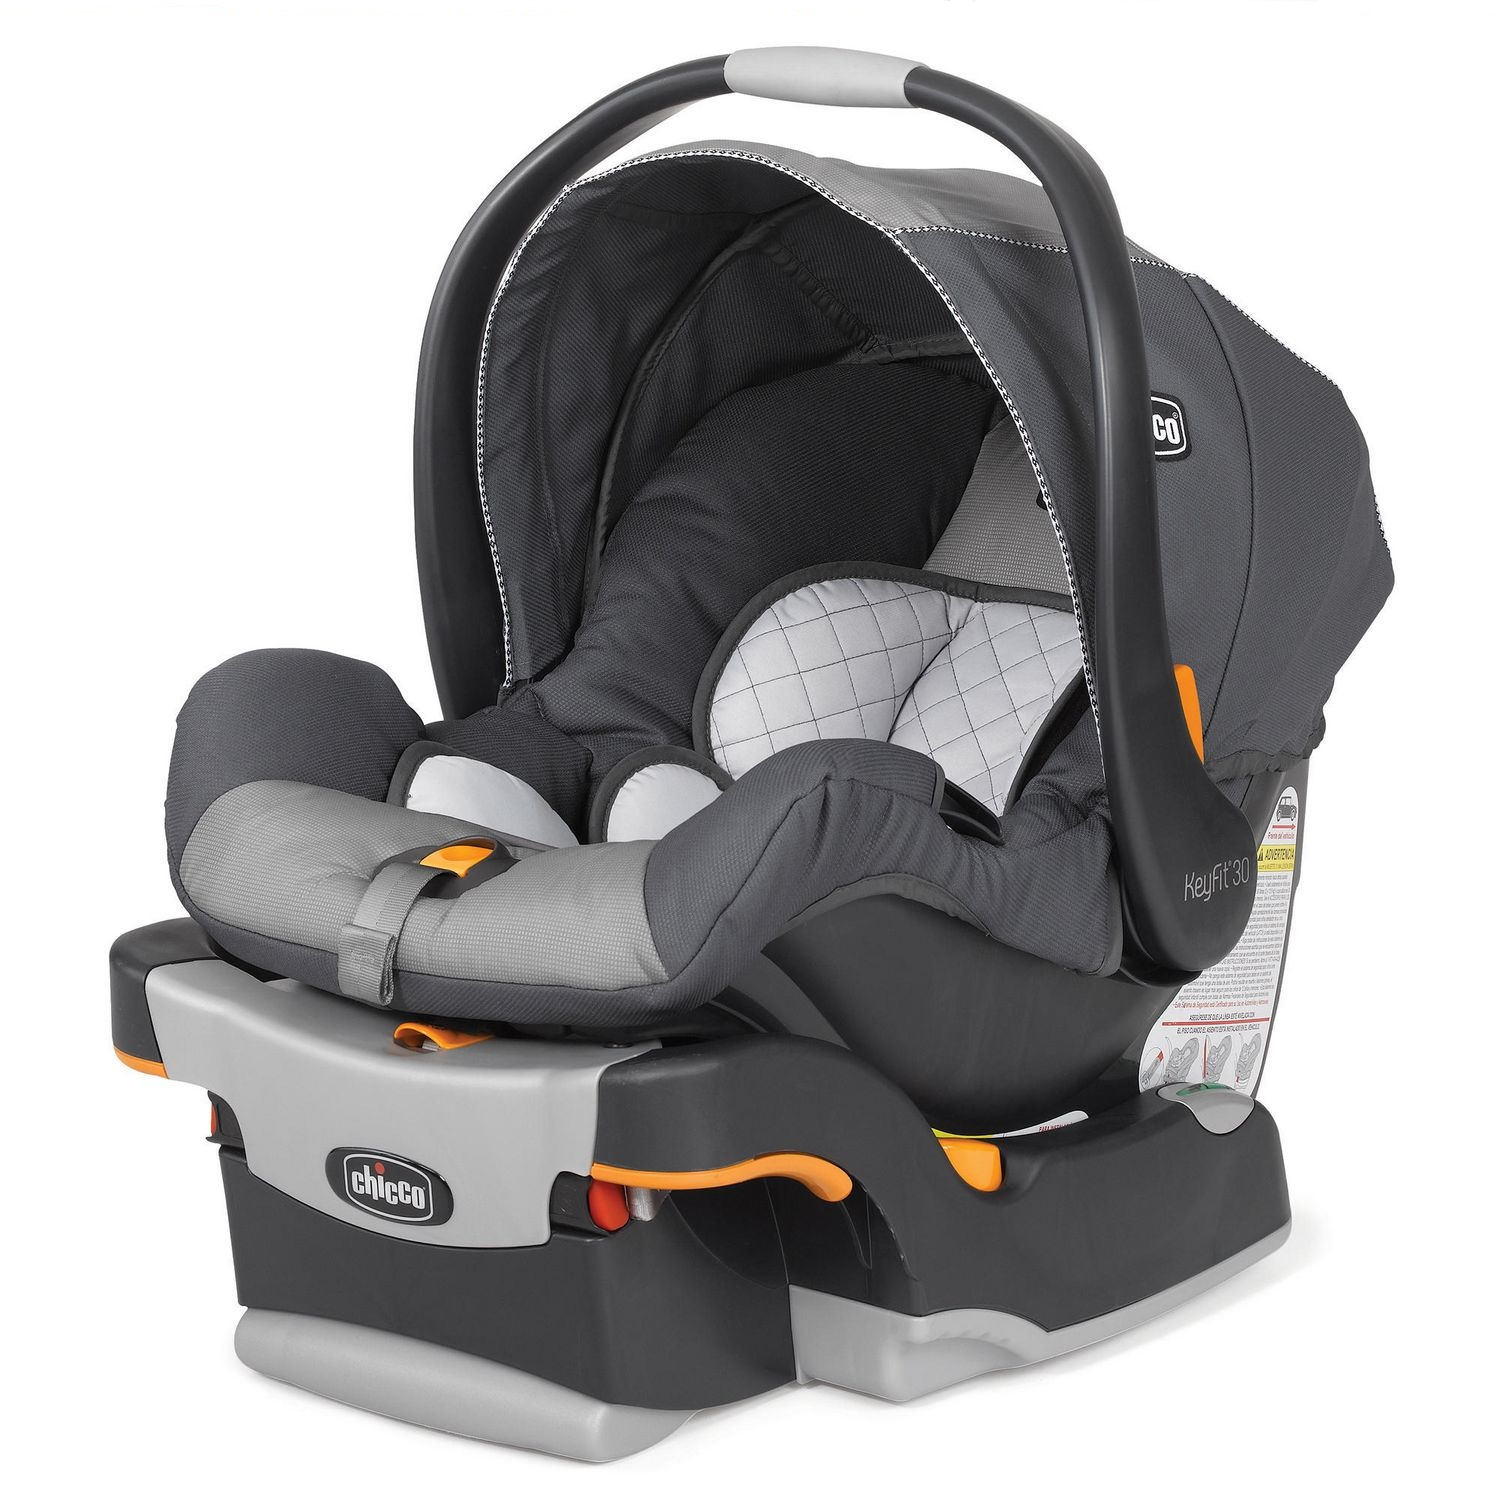 Black and grey Chicco KeyFit infant car seat - best infant car seat